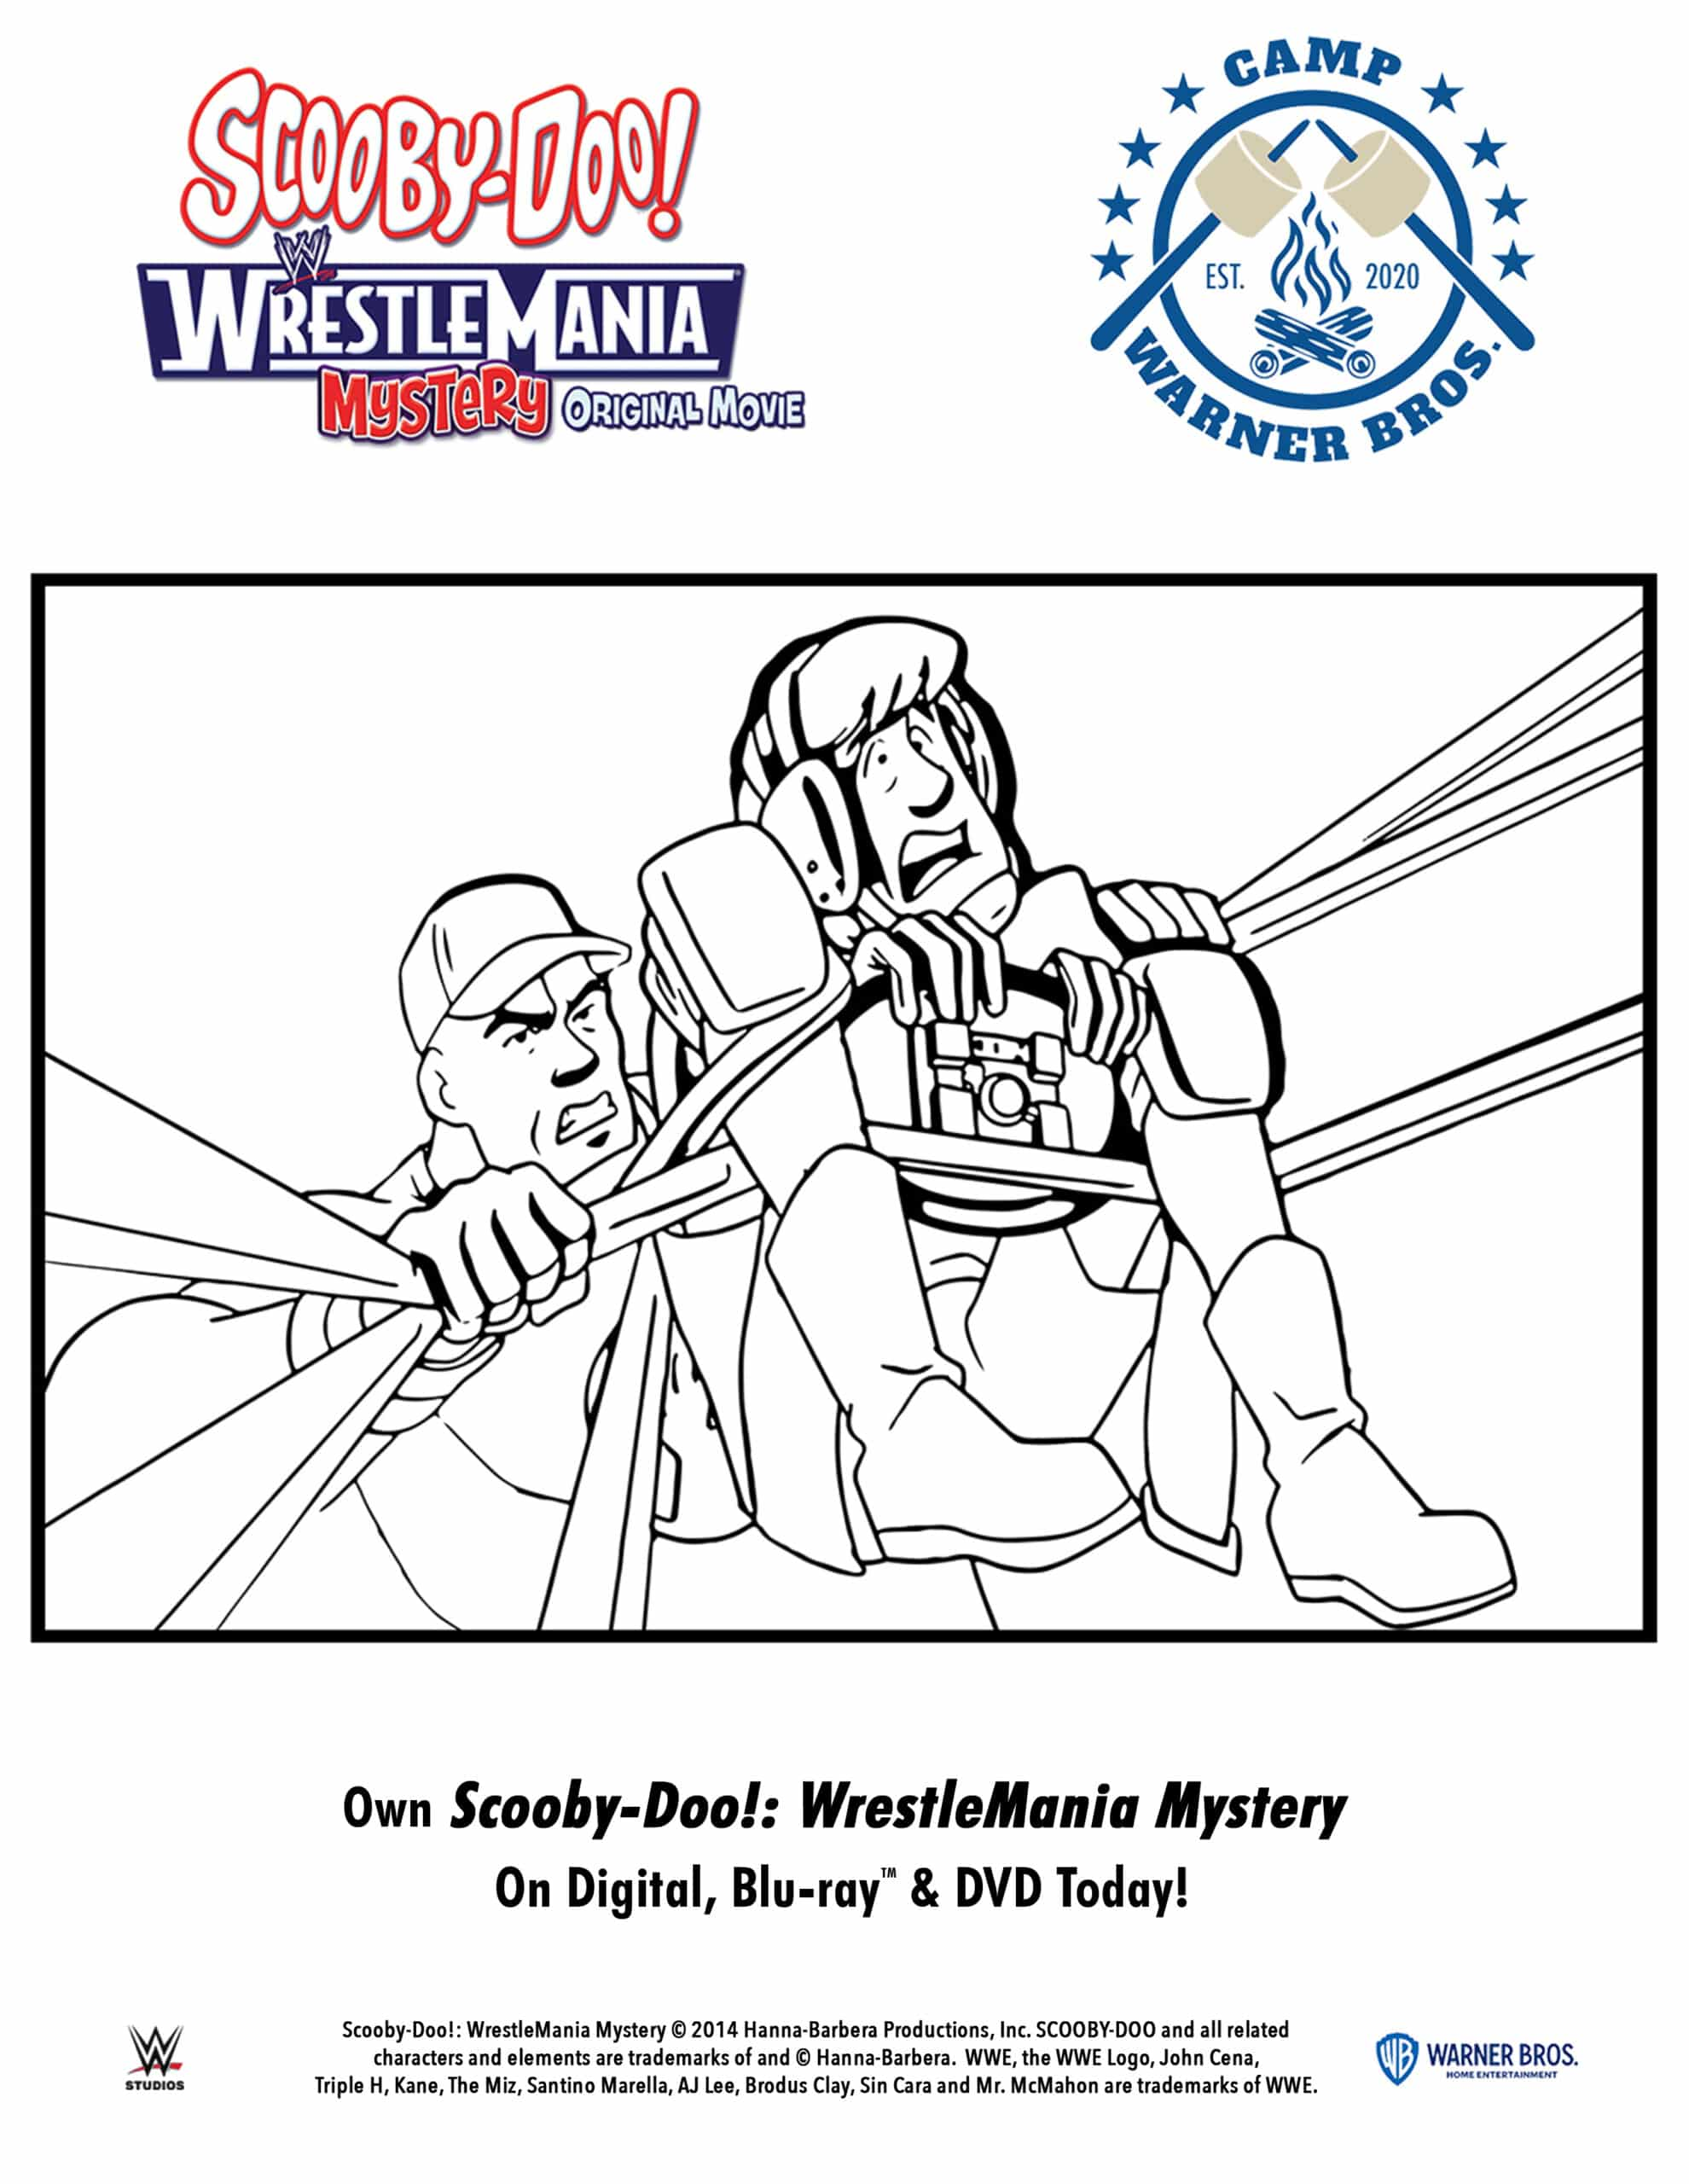 Scooby-Doo!: WrestleMania Mystery Coloring pages. When Shaggy and Scooby win tickets to WrestleMania®, they convince the entire Mystery Inc. gang to travel to WWE City in the Mystery Machine to enjoy the show. Scooby-Doo!: WrestleMania Mystery is now available to own on Digital, Blu-ray & DVD